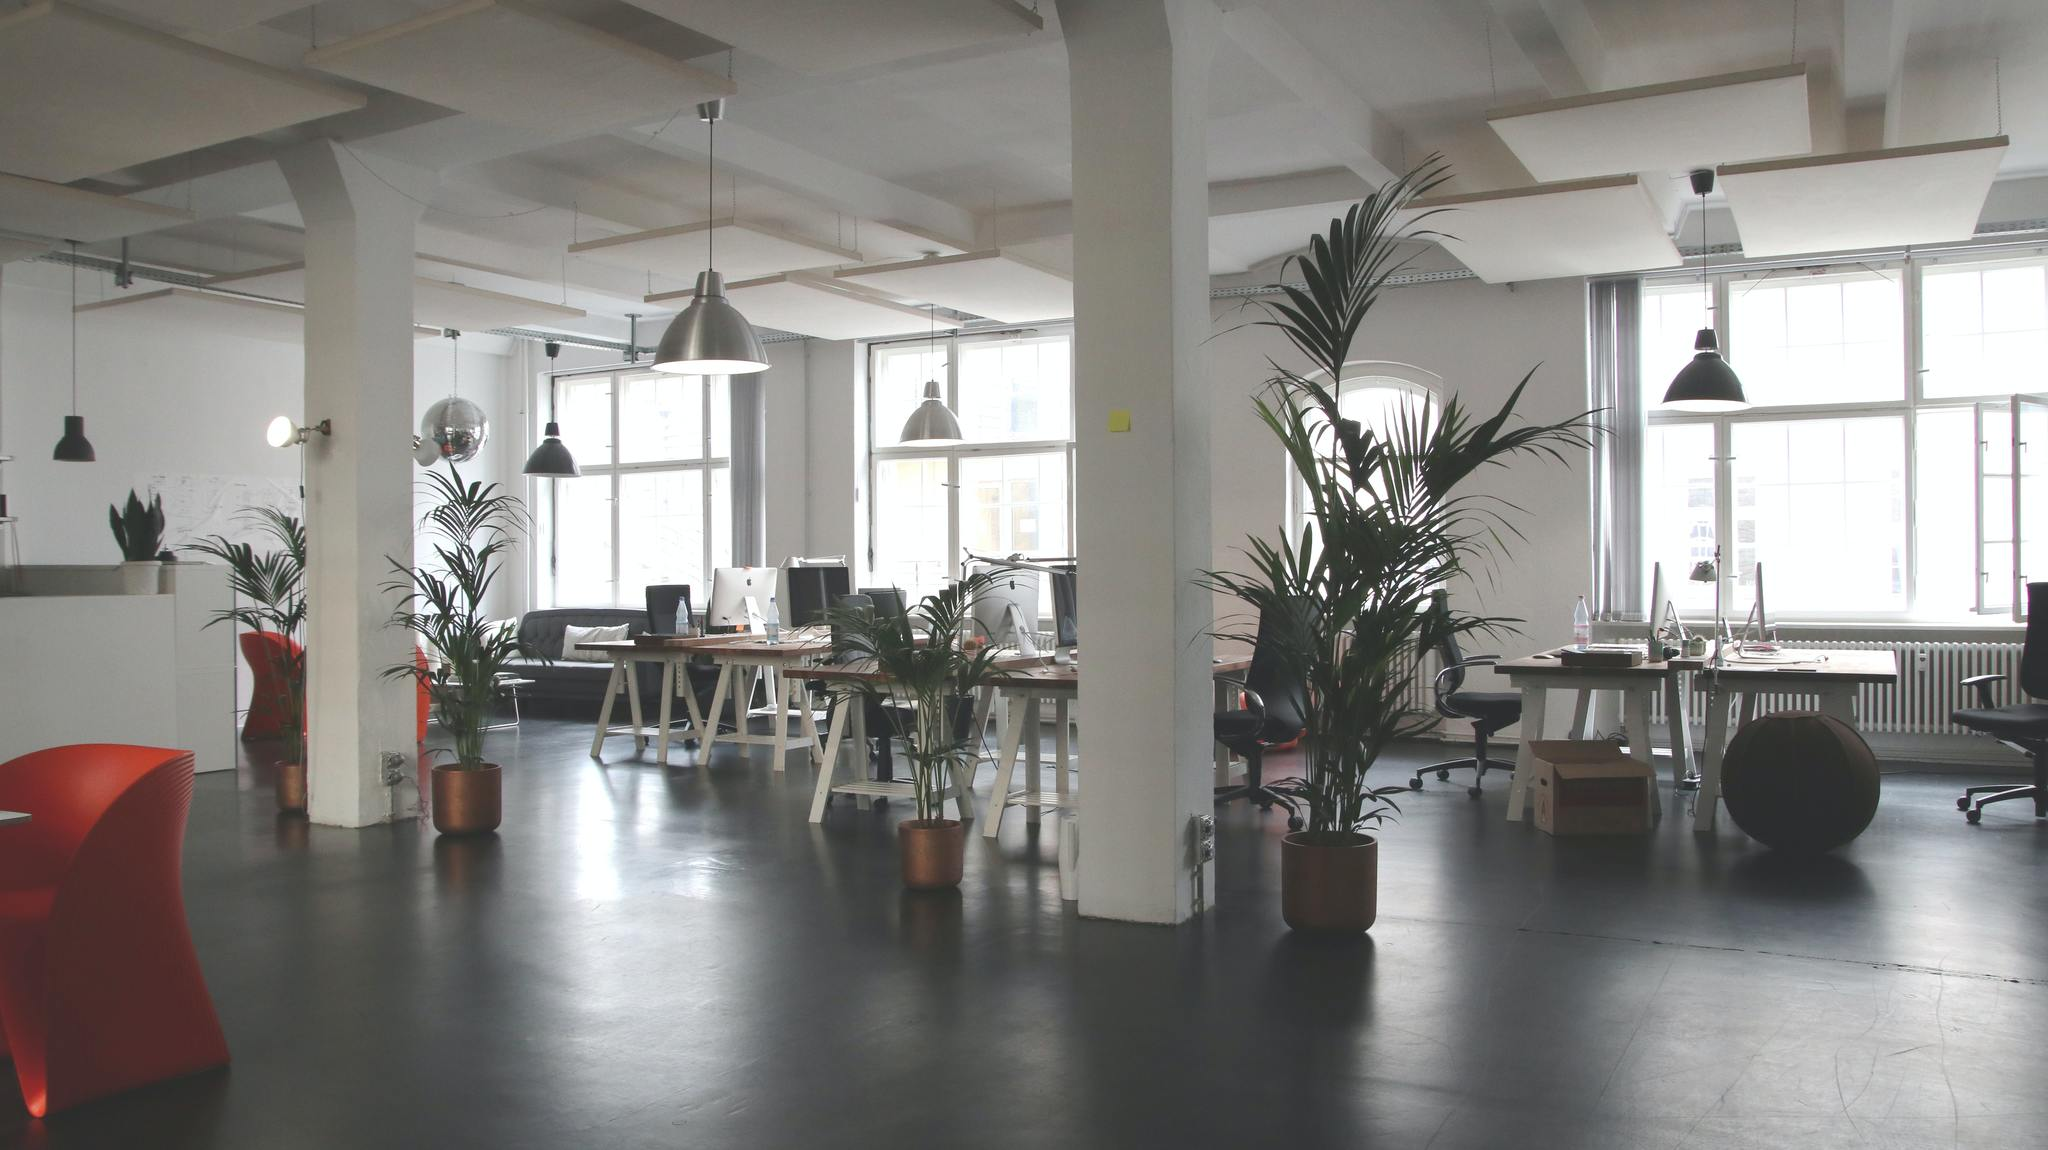 10 Tips for Returning to Work during COVID